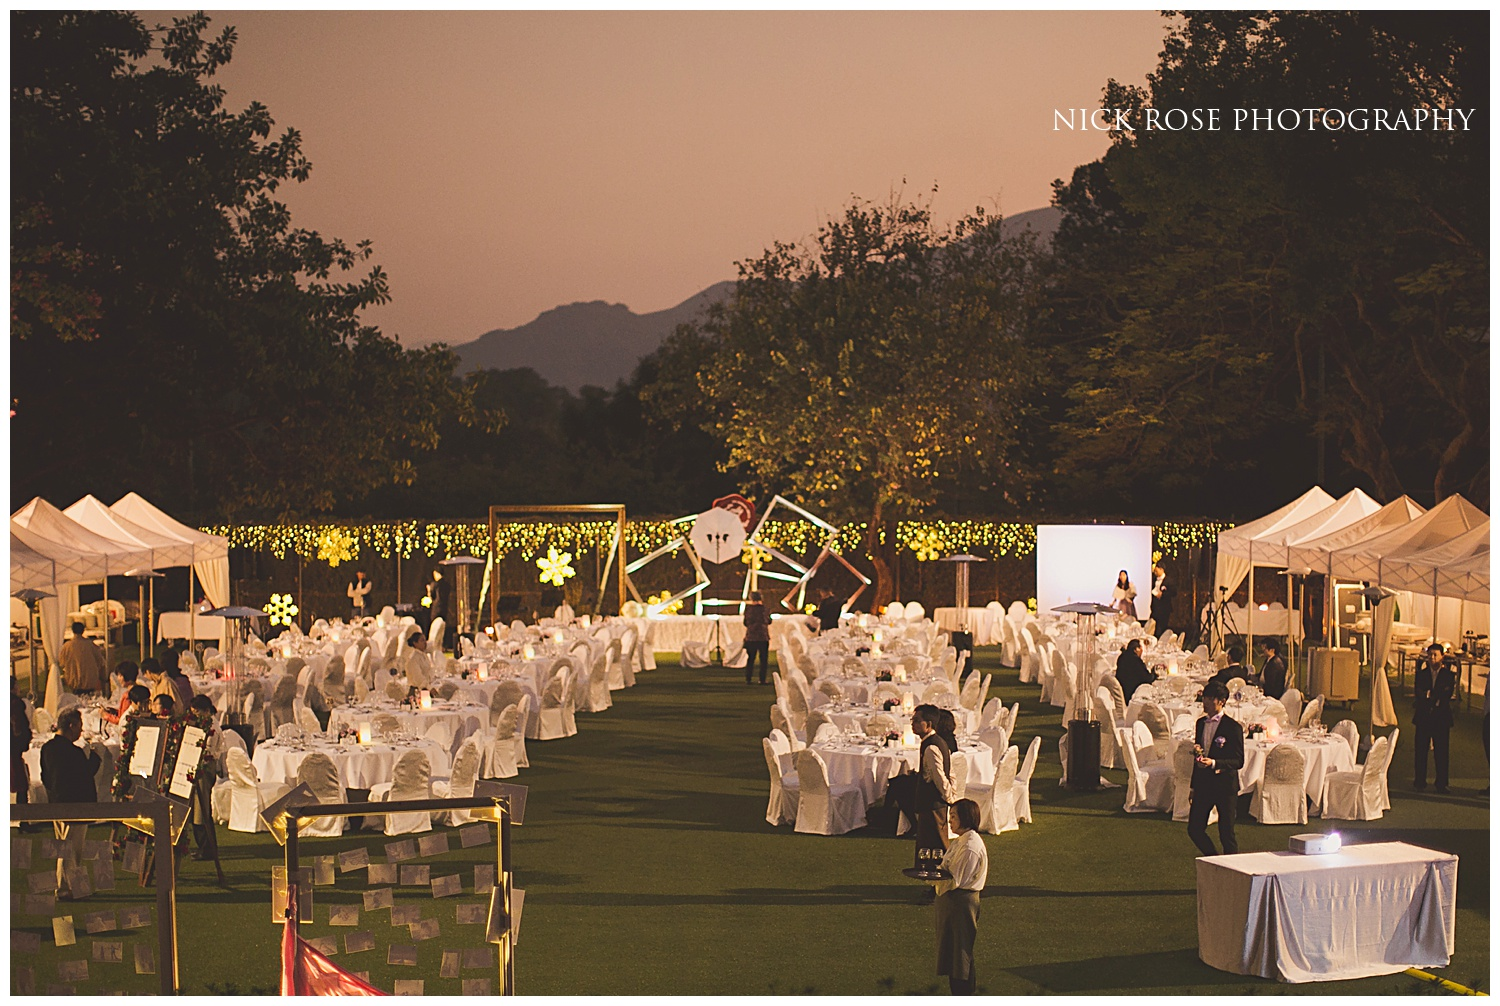 Beas River Wedding Venue Hong Kong